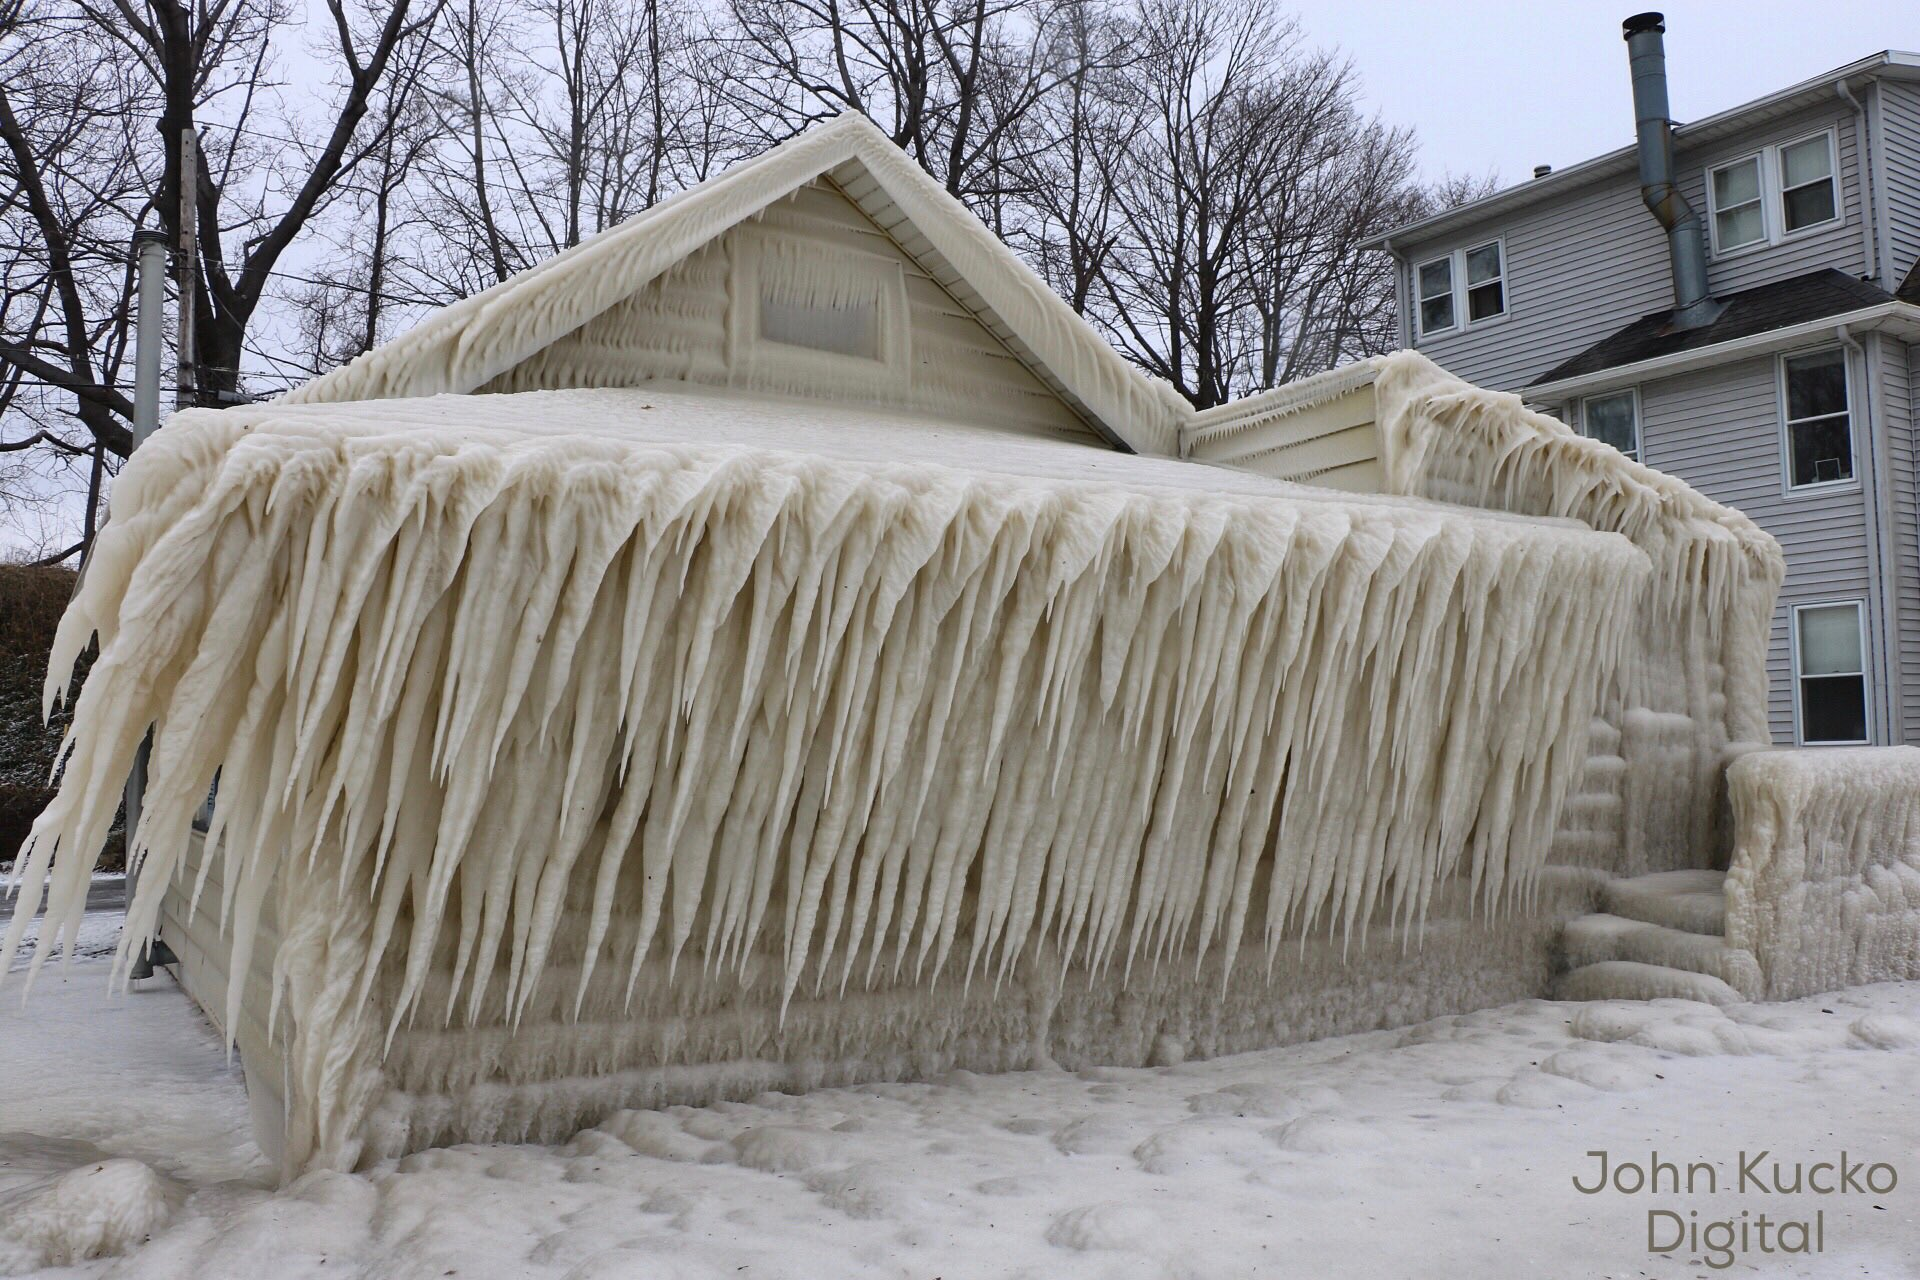 A house on Lake Road, covered in ice, in Webster, NY. (Photo by John Kucko)